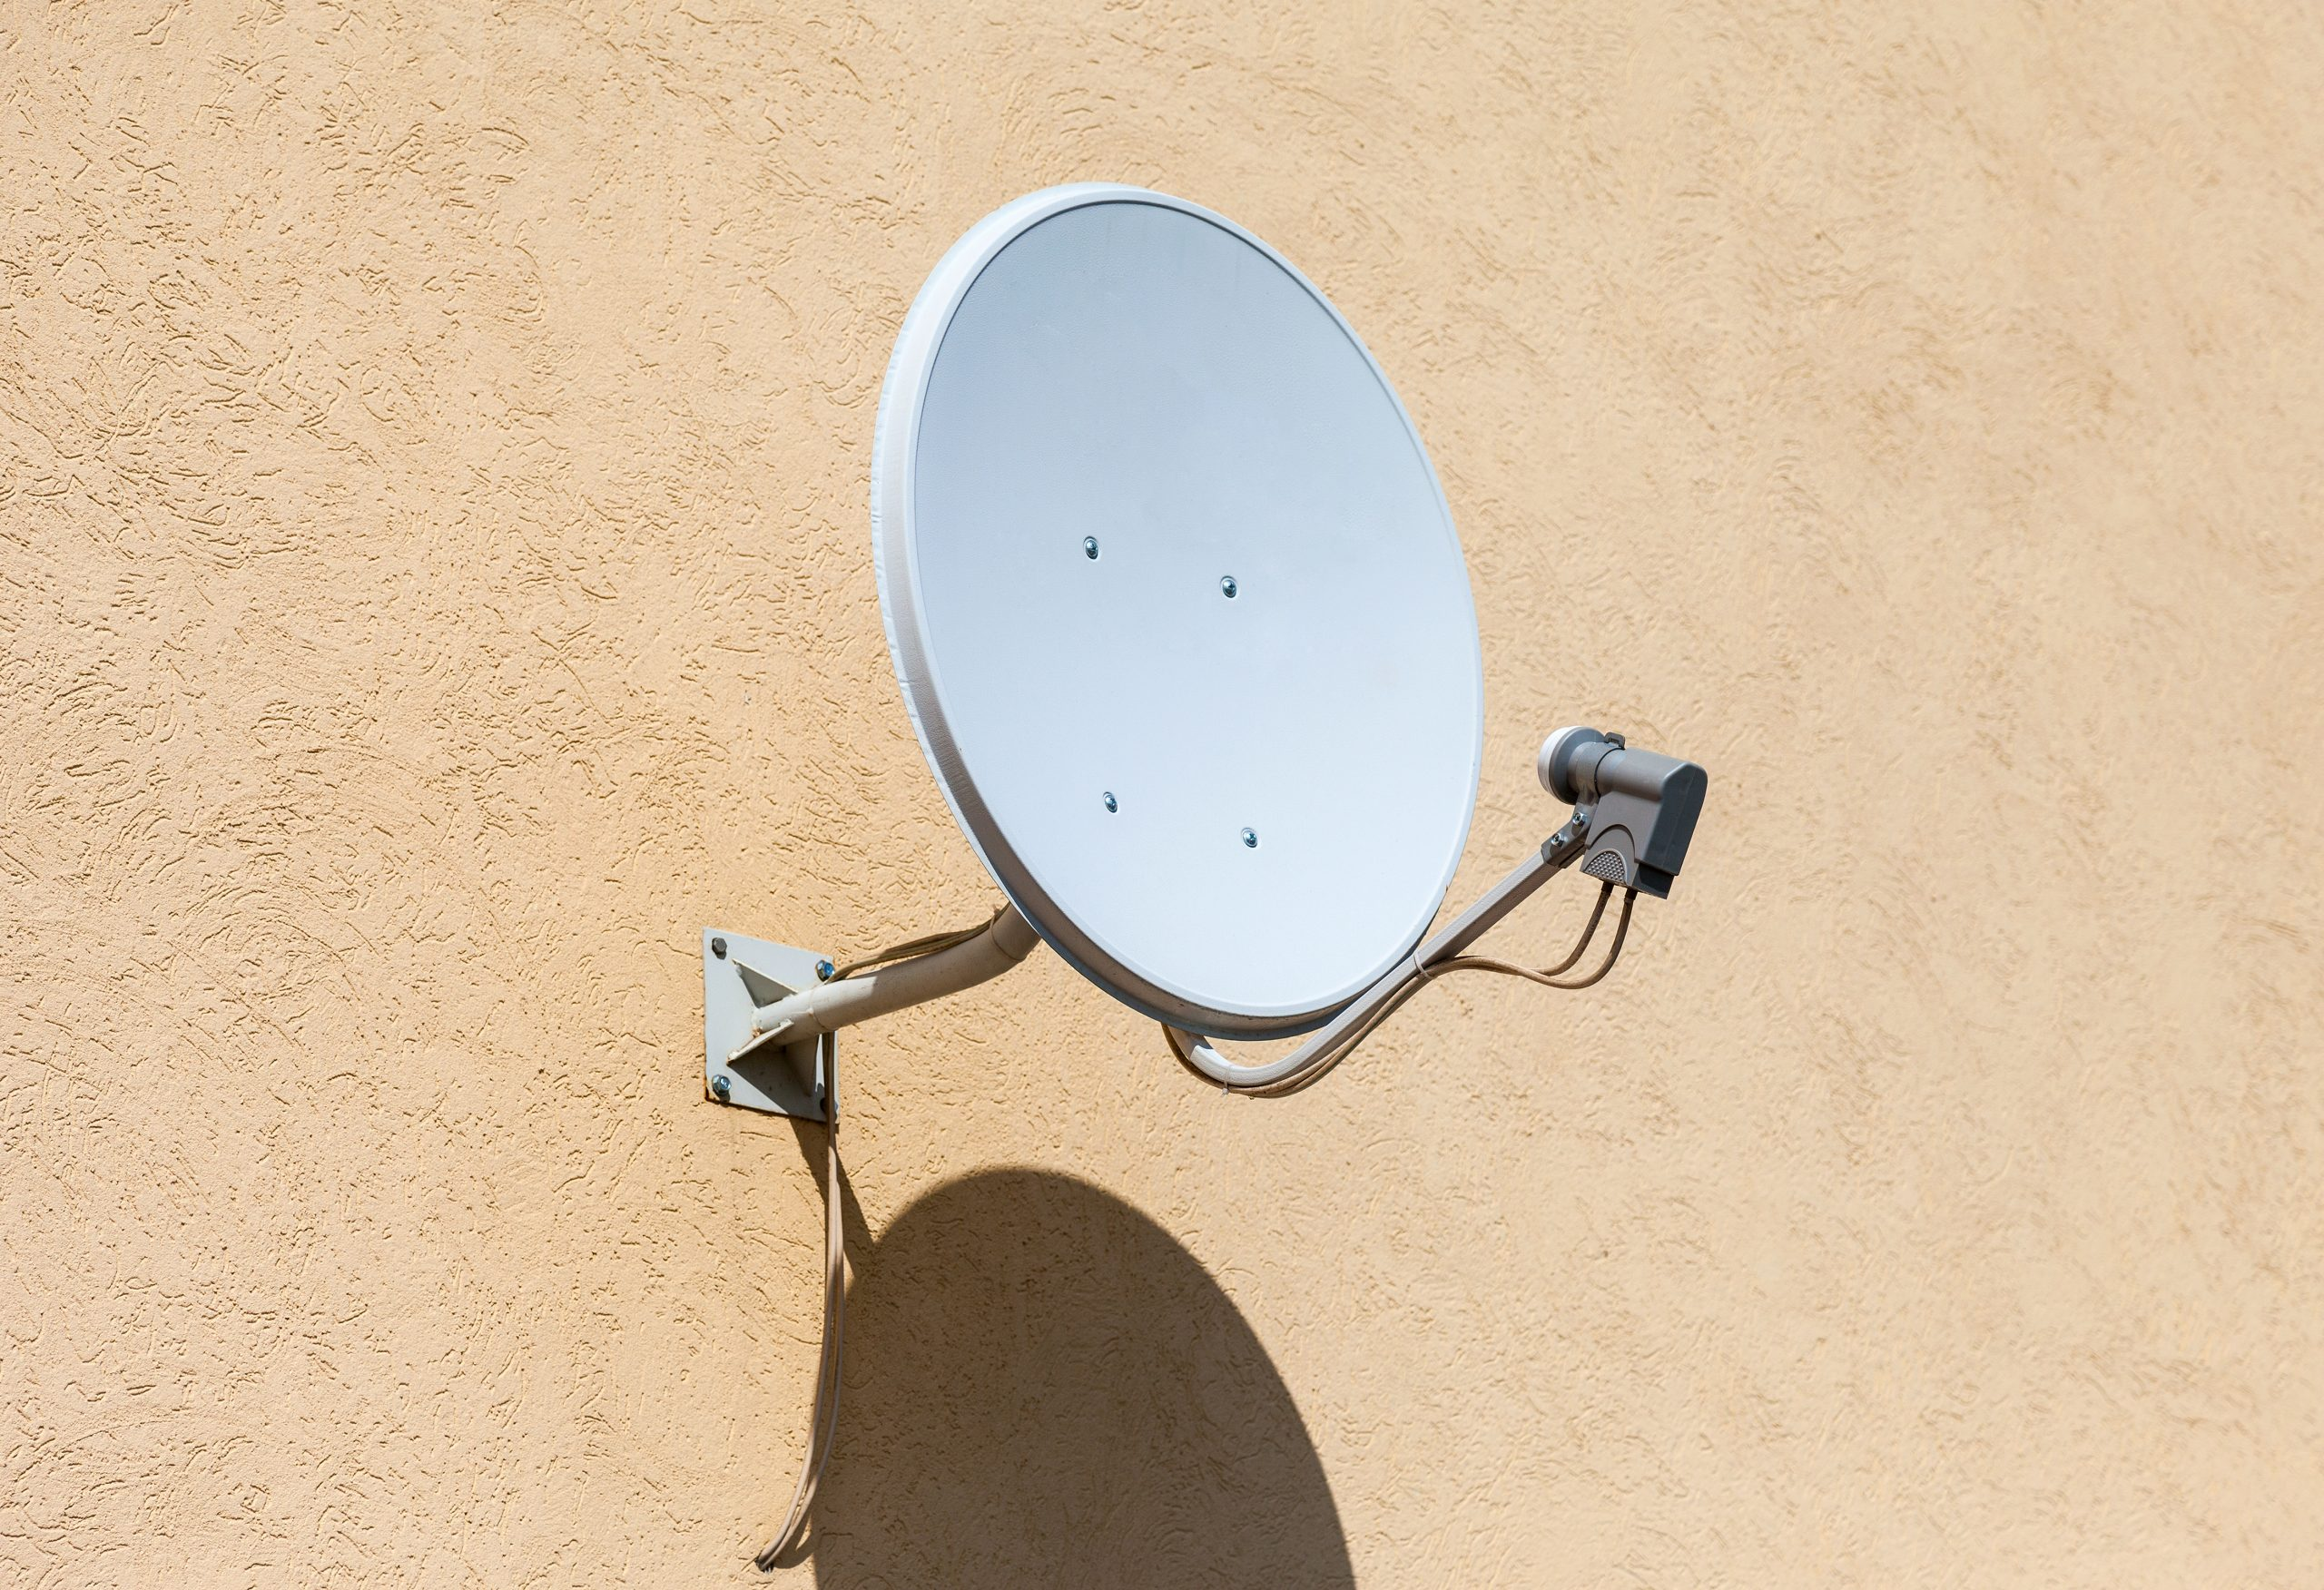 Best Satellite Dish 2020: Shopping Guide & Review